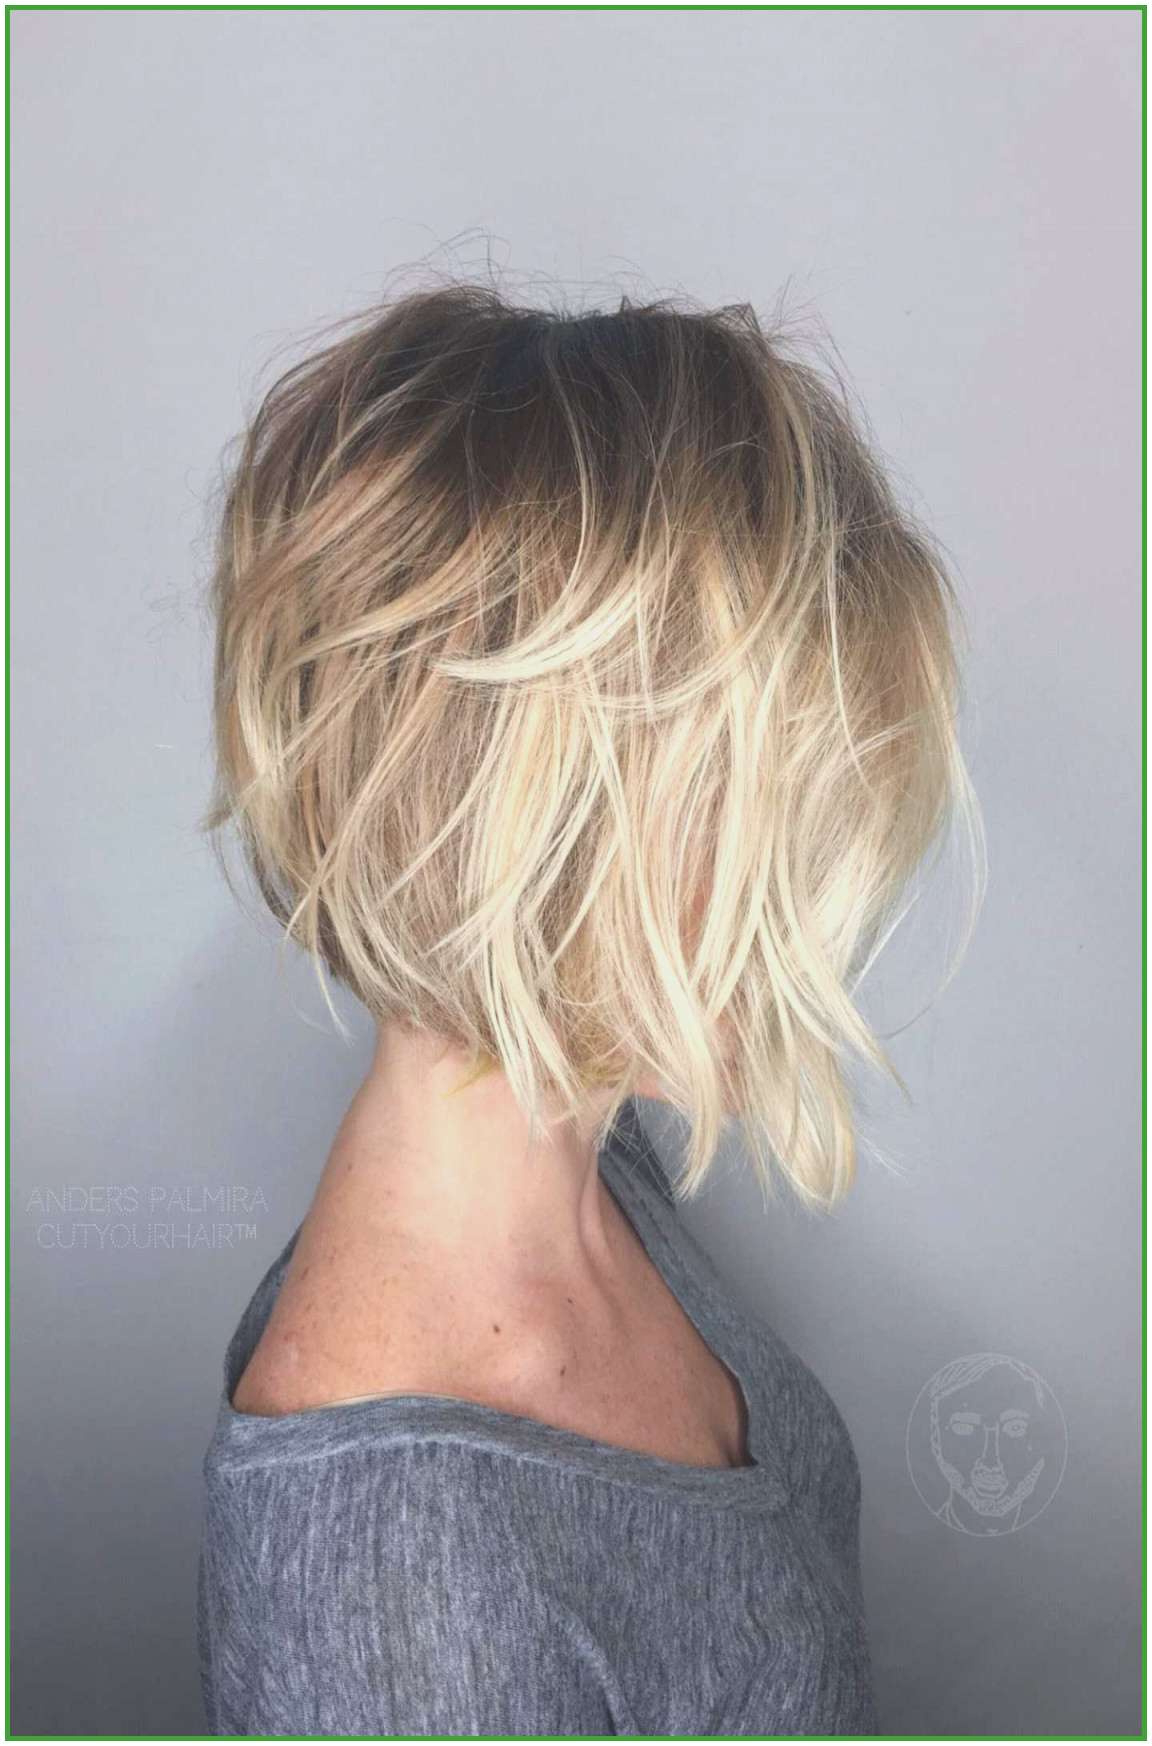 Hairstyles : Medium Choppy Bob Interesting New Fresh Short Inside Very Short Shaggy Bob Hairstyles (View 9 of 20)